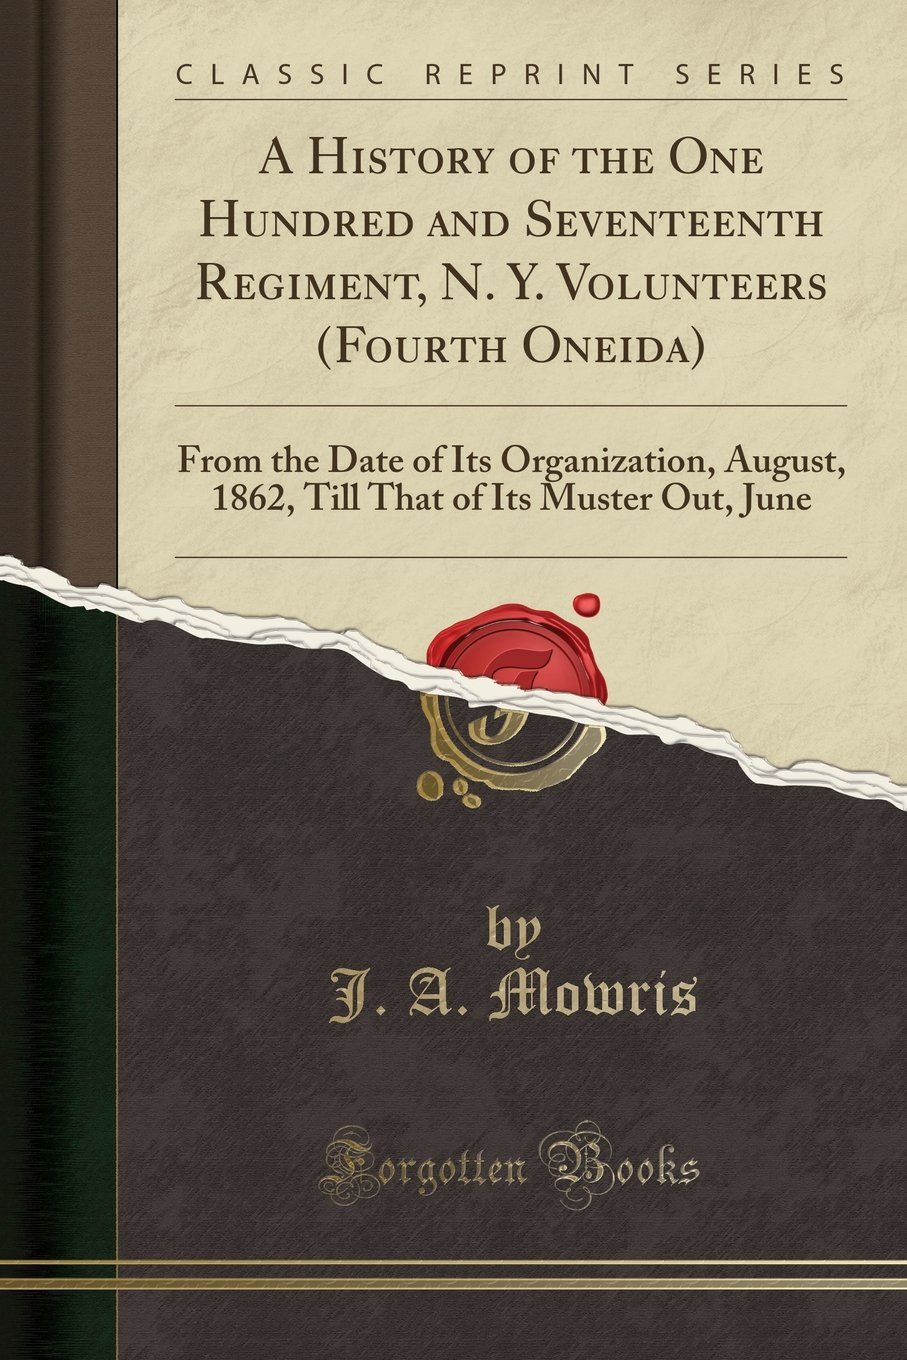 A History of the One Hundred and Seventeenth Regiment, N. Y. Volunteers (Fourth Oneida): From the Date of Its Organization, August, 1862, Till That of Its Muster Out, June (Classic Reprint) pdf